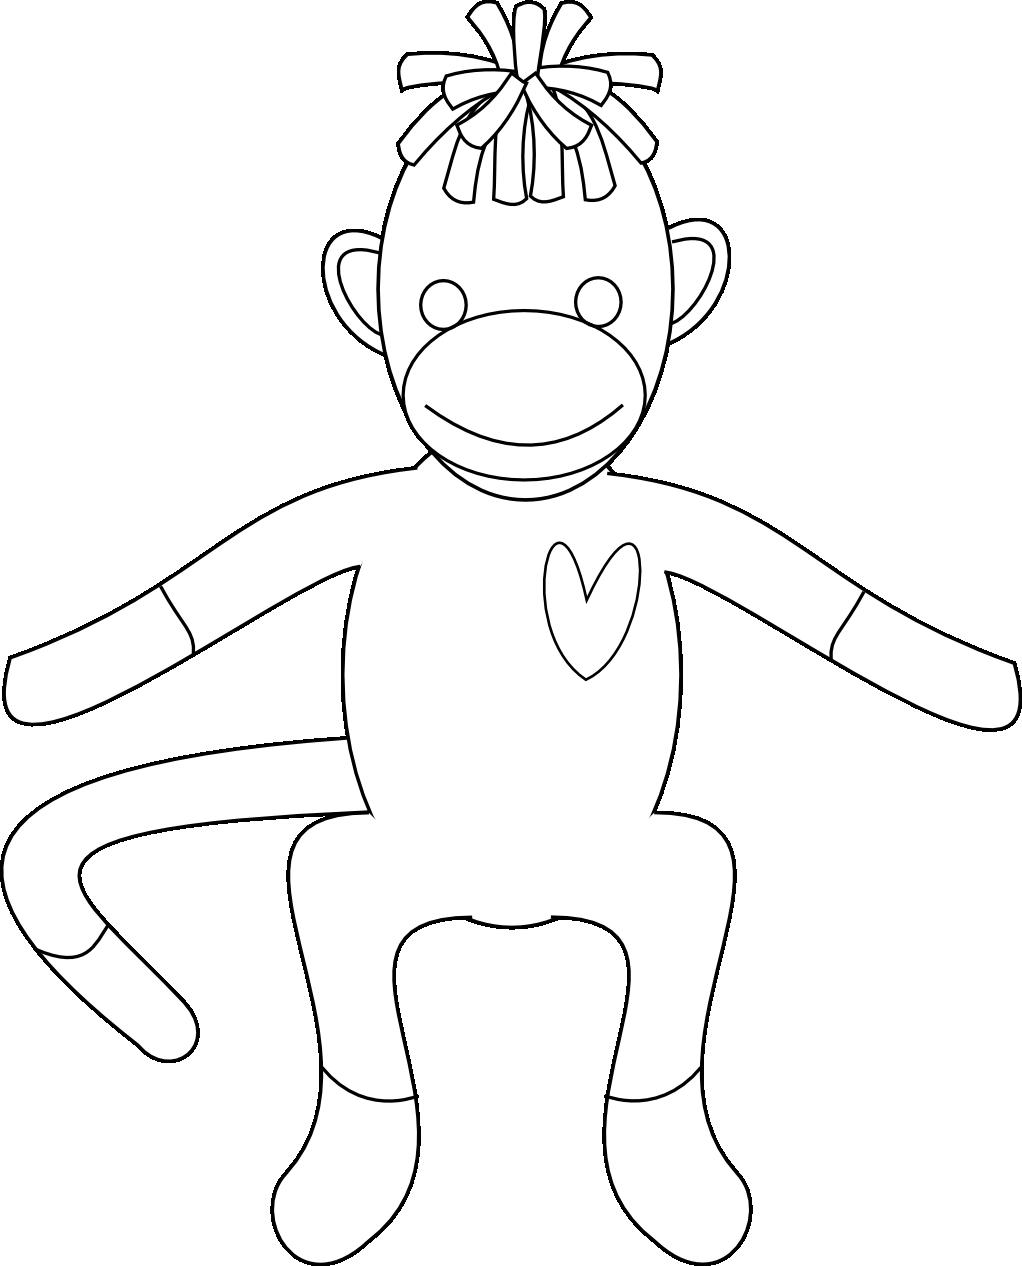 Sock monkey face coloring pages for Sock monkey face template